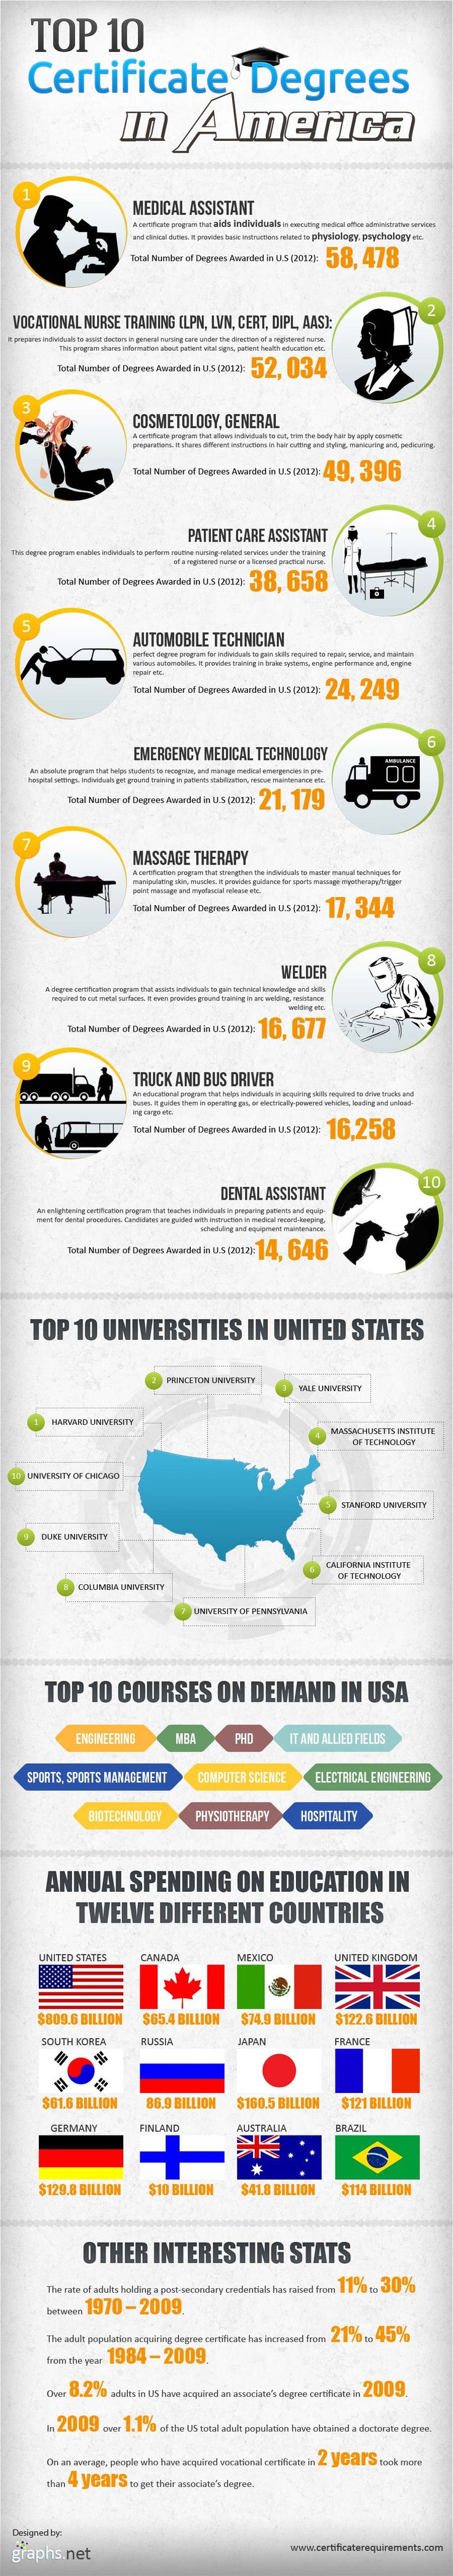 infographic top ranking american certificate degrees find 10 of the most popular certificate